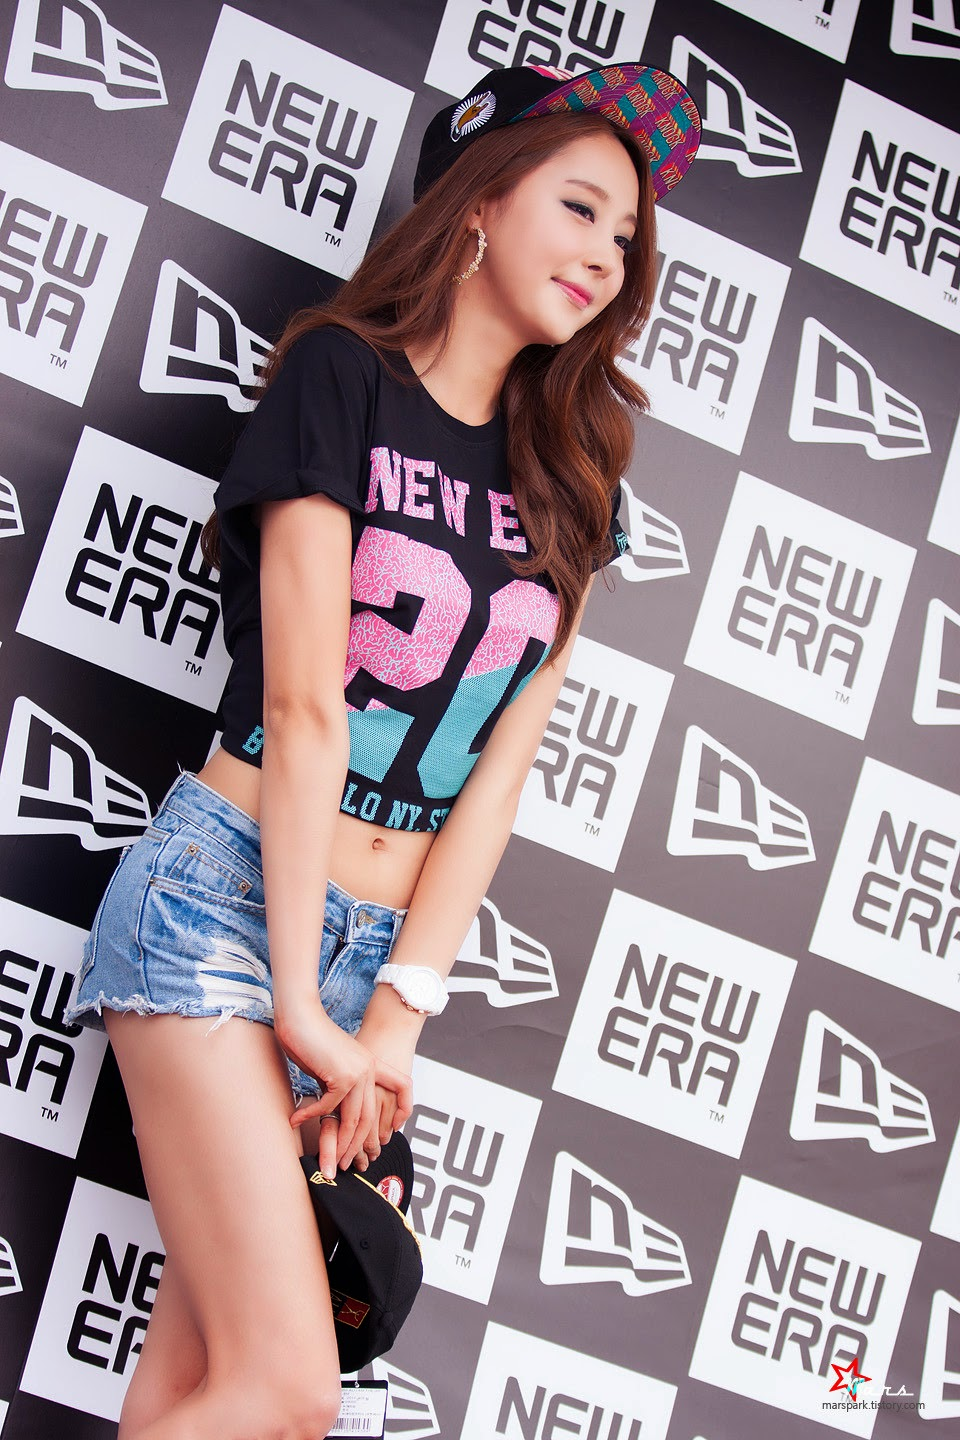 4 Eun Bin - New Era Pop-Up Store Promotion - very cute asian girl-girlcute4u.blogspot.com